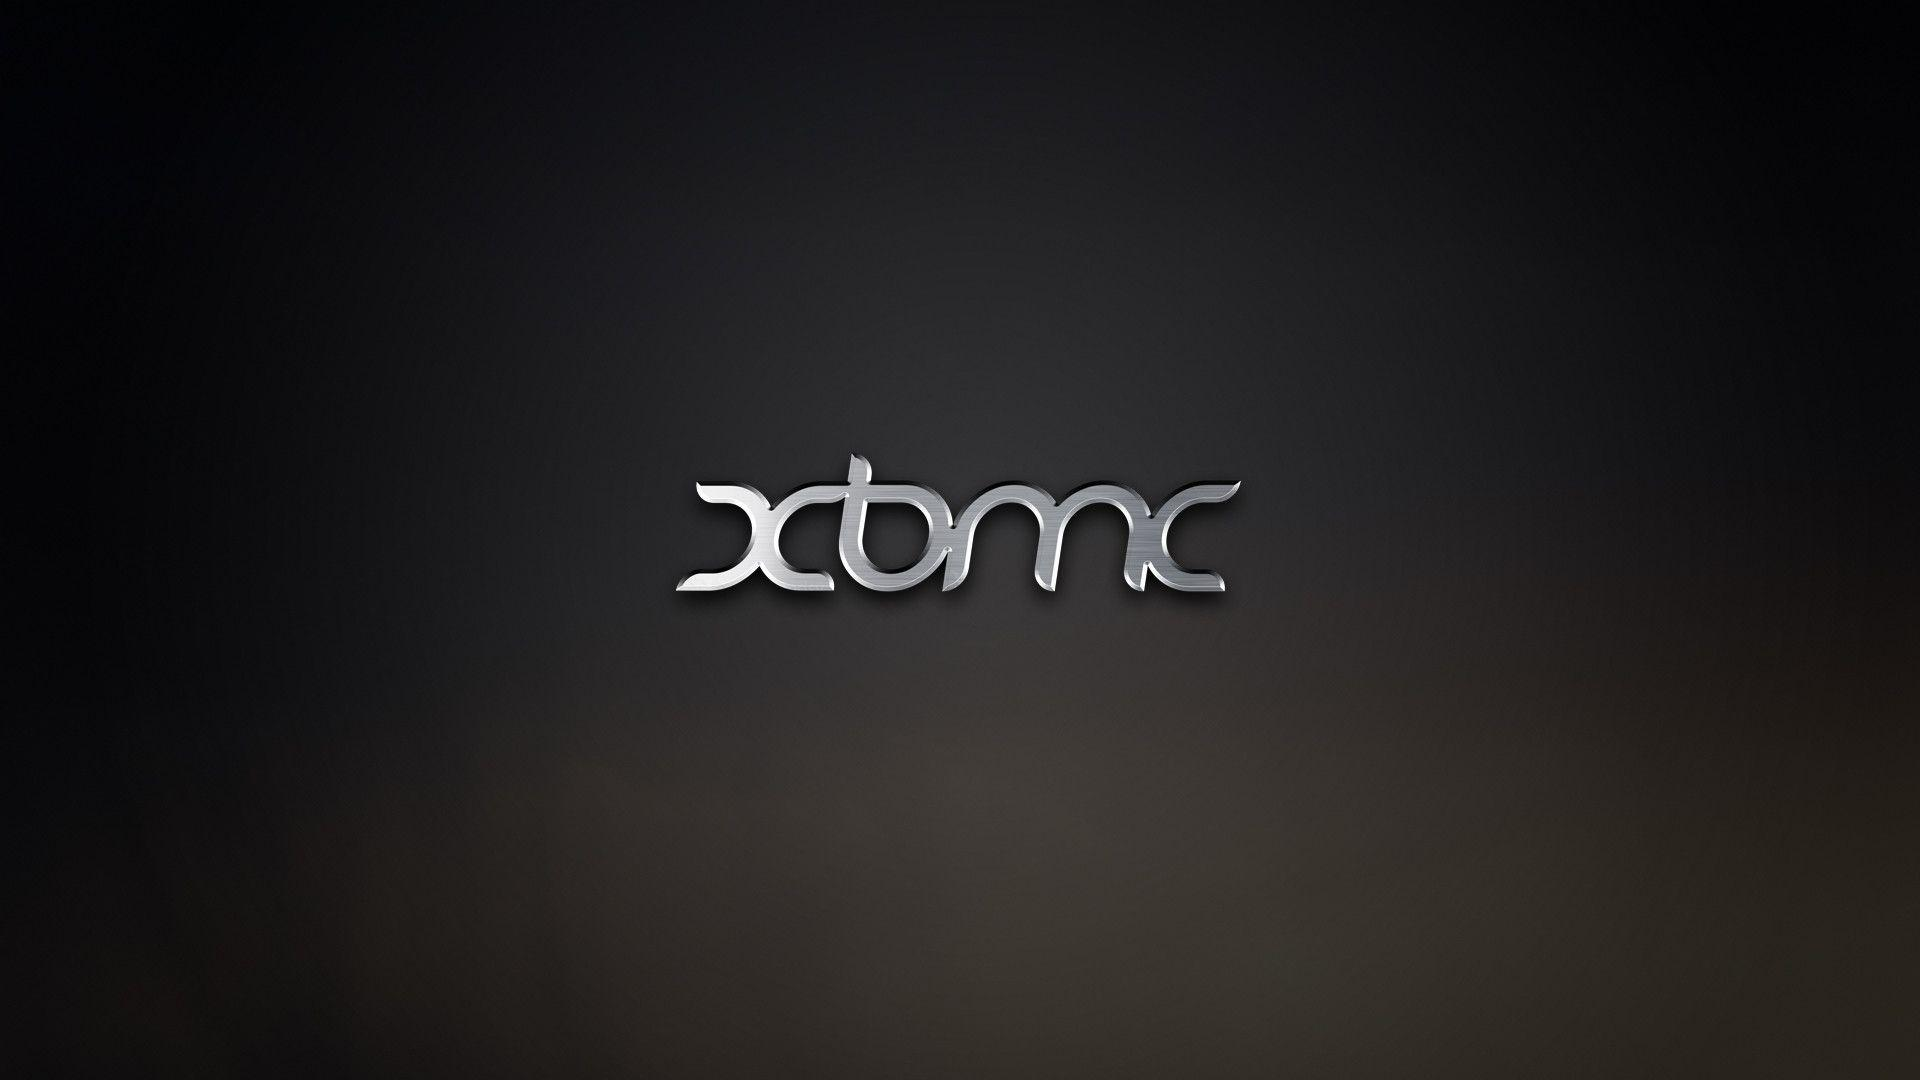 A few XBMC wallpapers